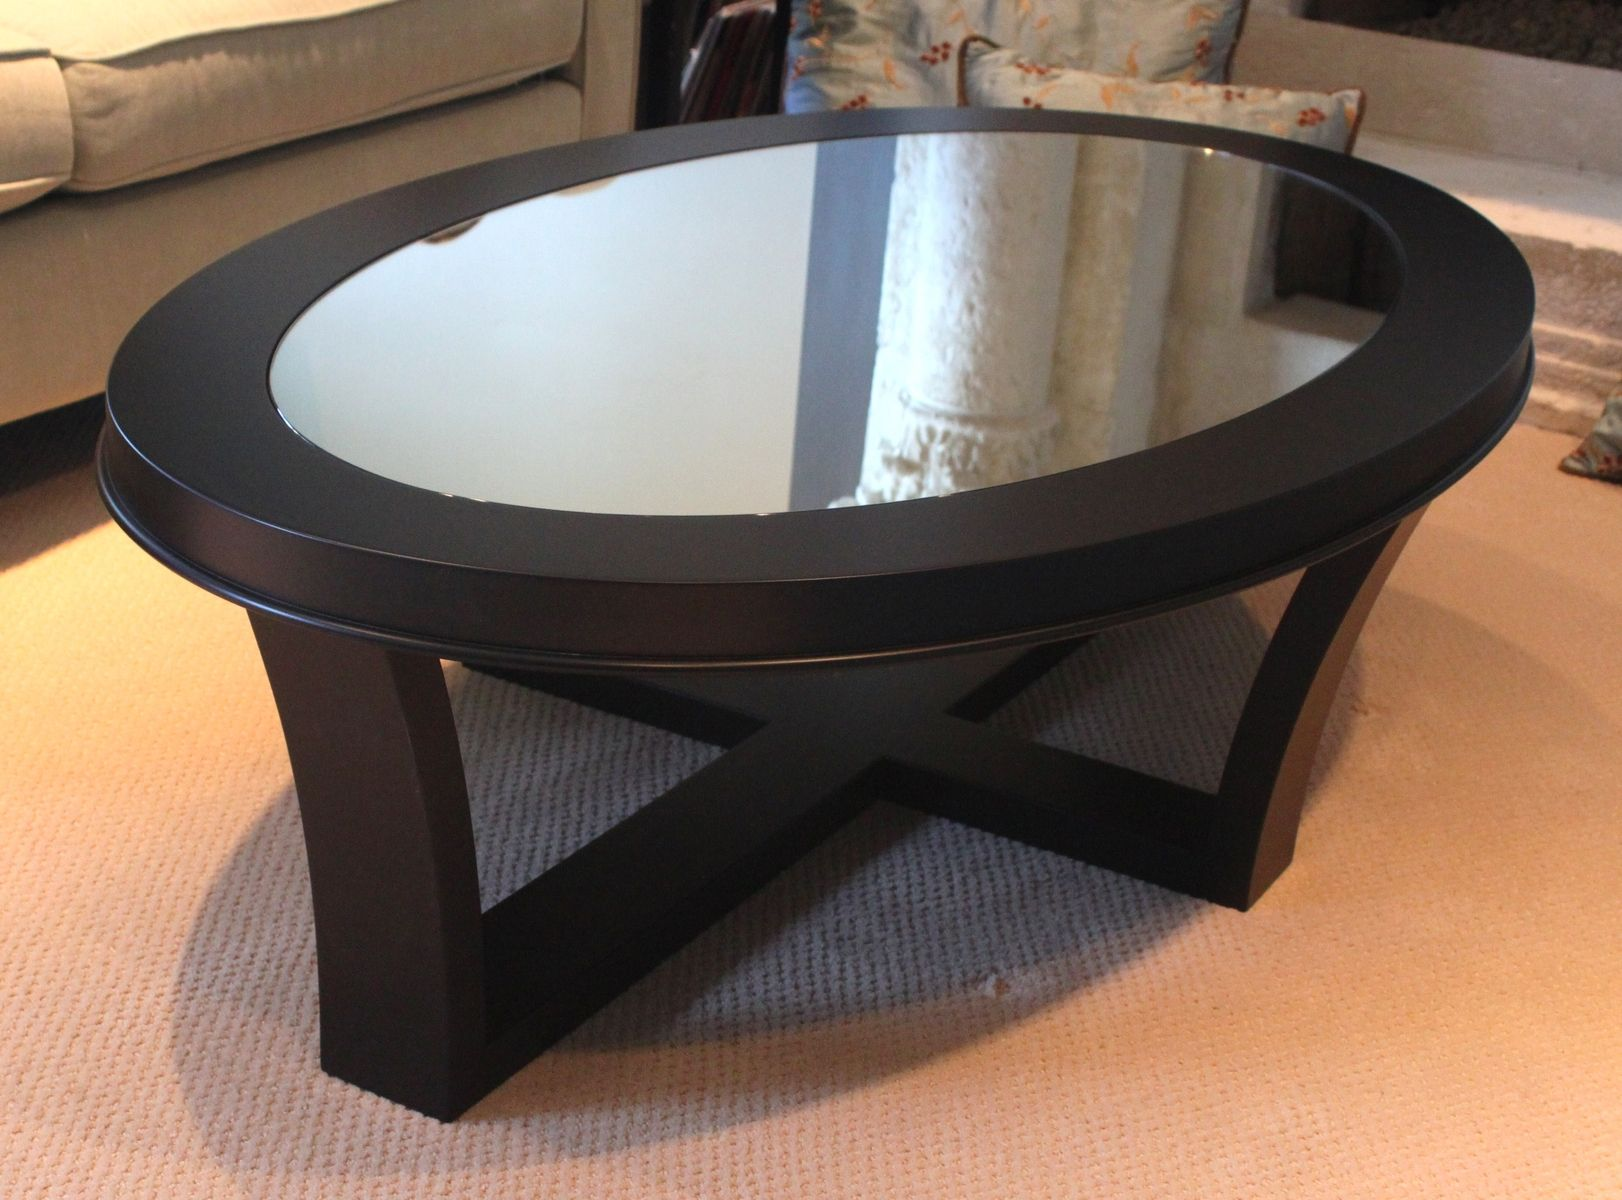 Oval Coffee Table Coffee Table Furniture Made Coffee Table Home Coffee Tables [ 1200 x 1622 Pixel ]